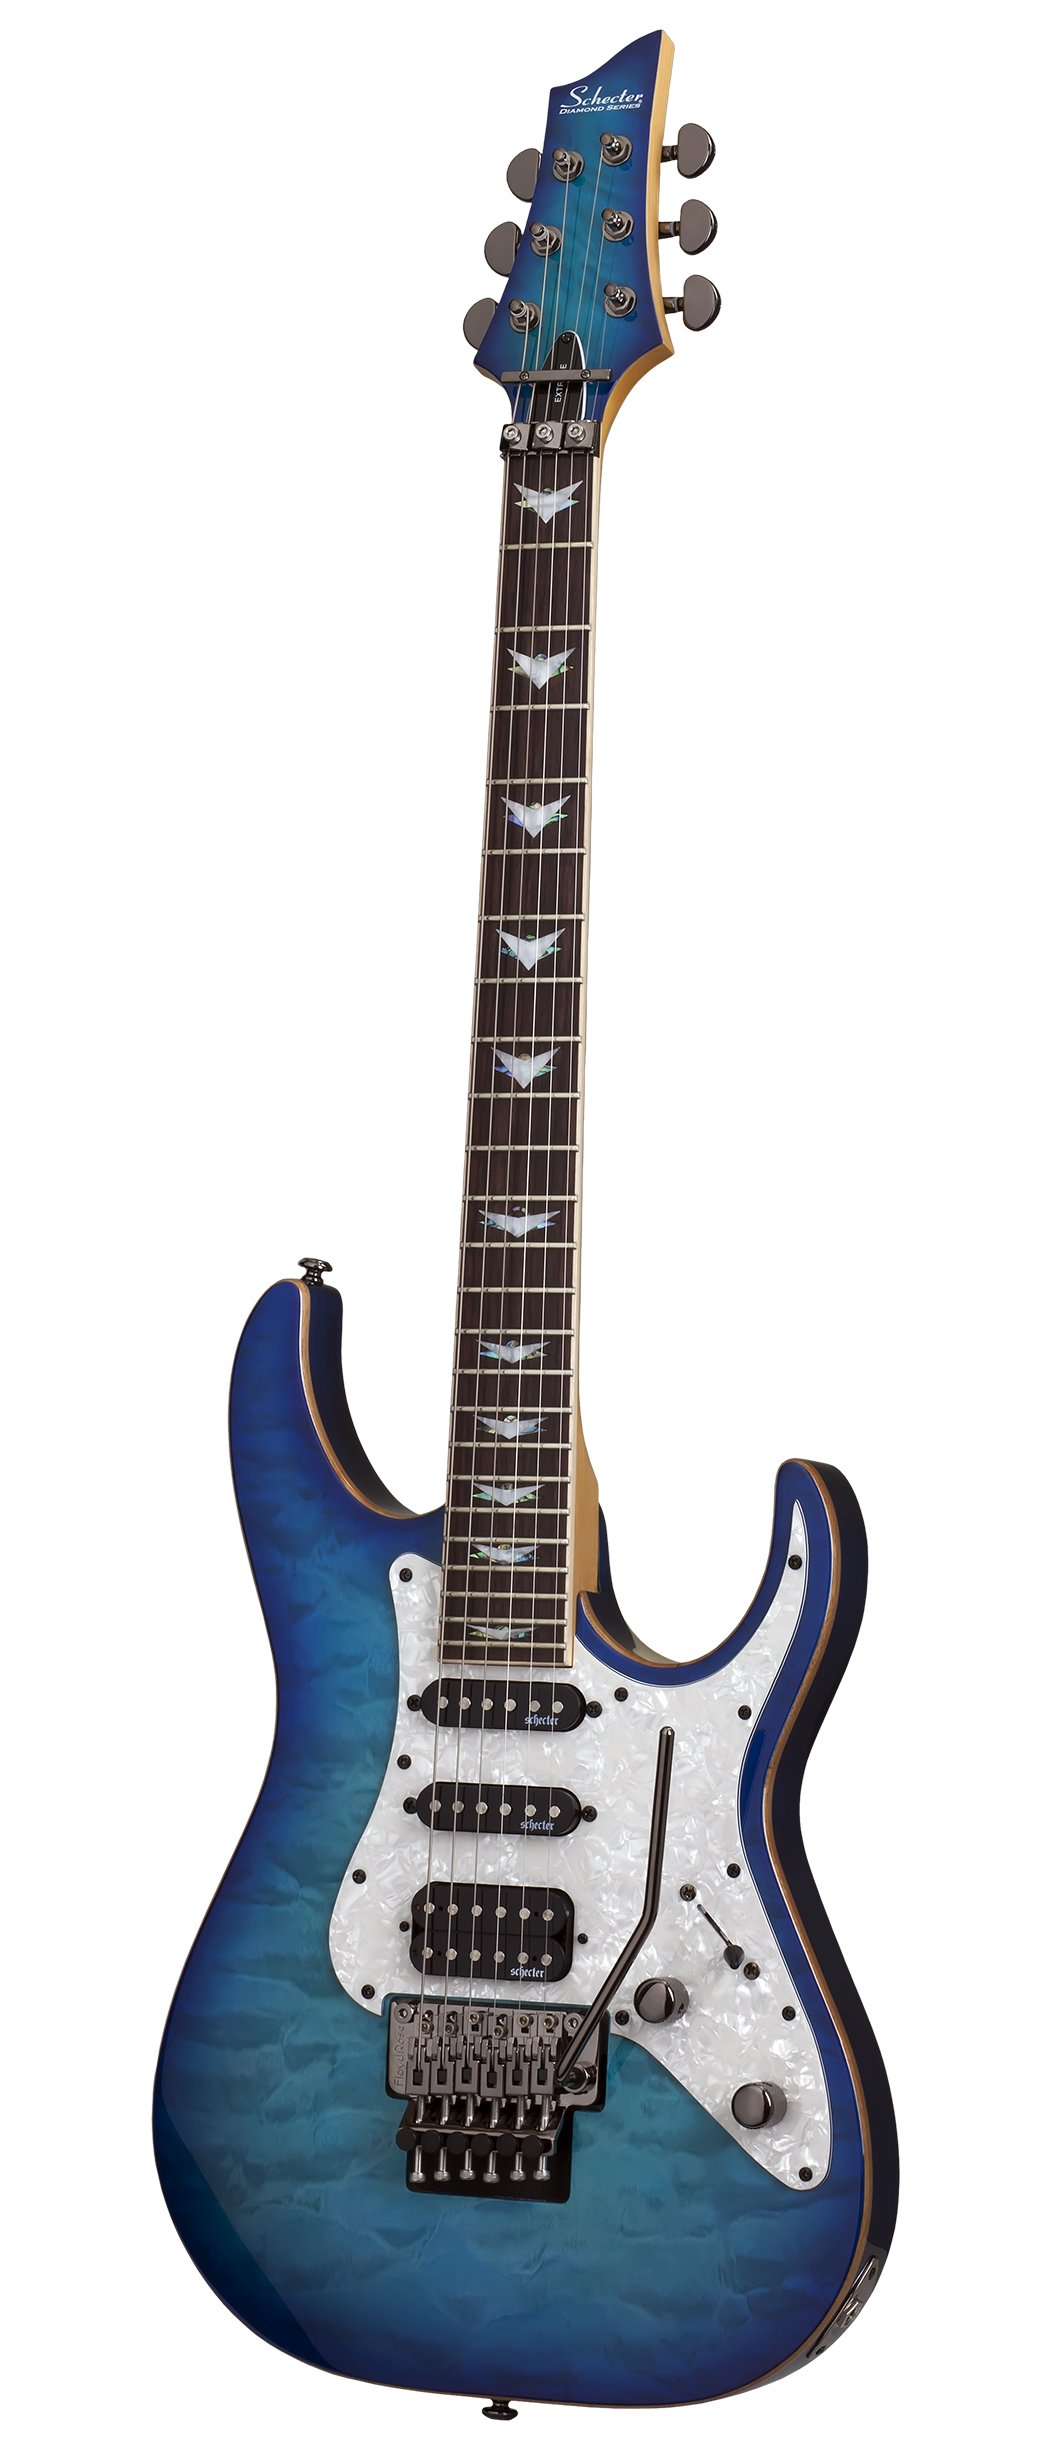 Cheap Schecter 6 String Solid-Body Electric Guitar Ocean Blue Burst (1994) Black Friday & Cyber Monday 2019